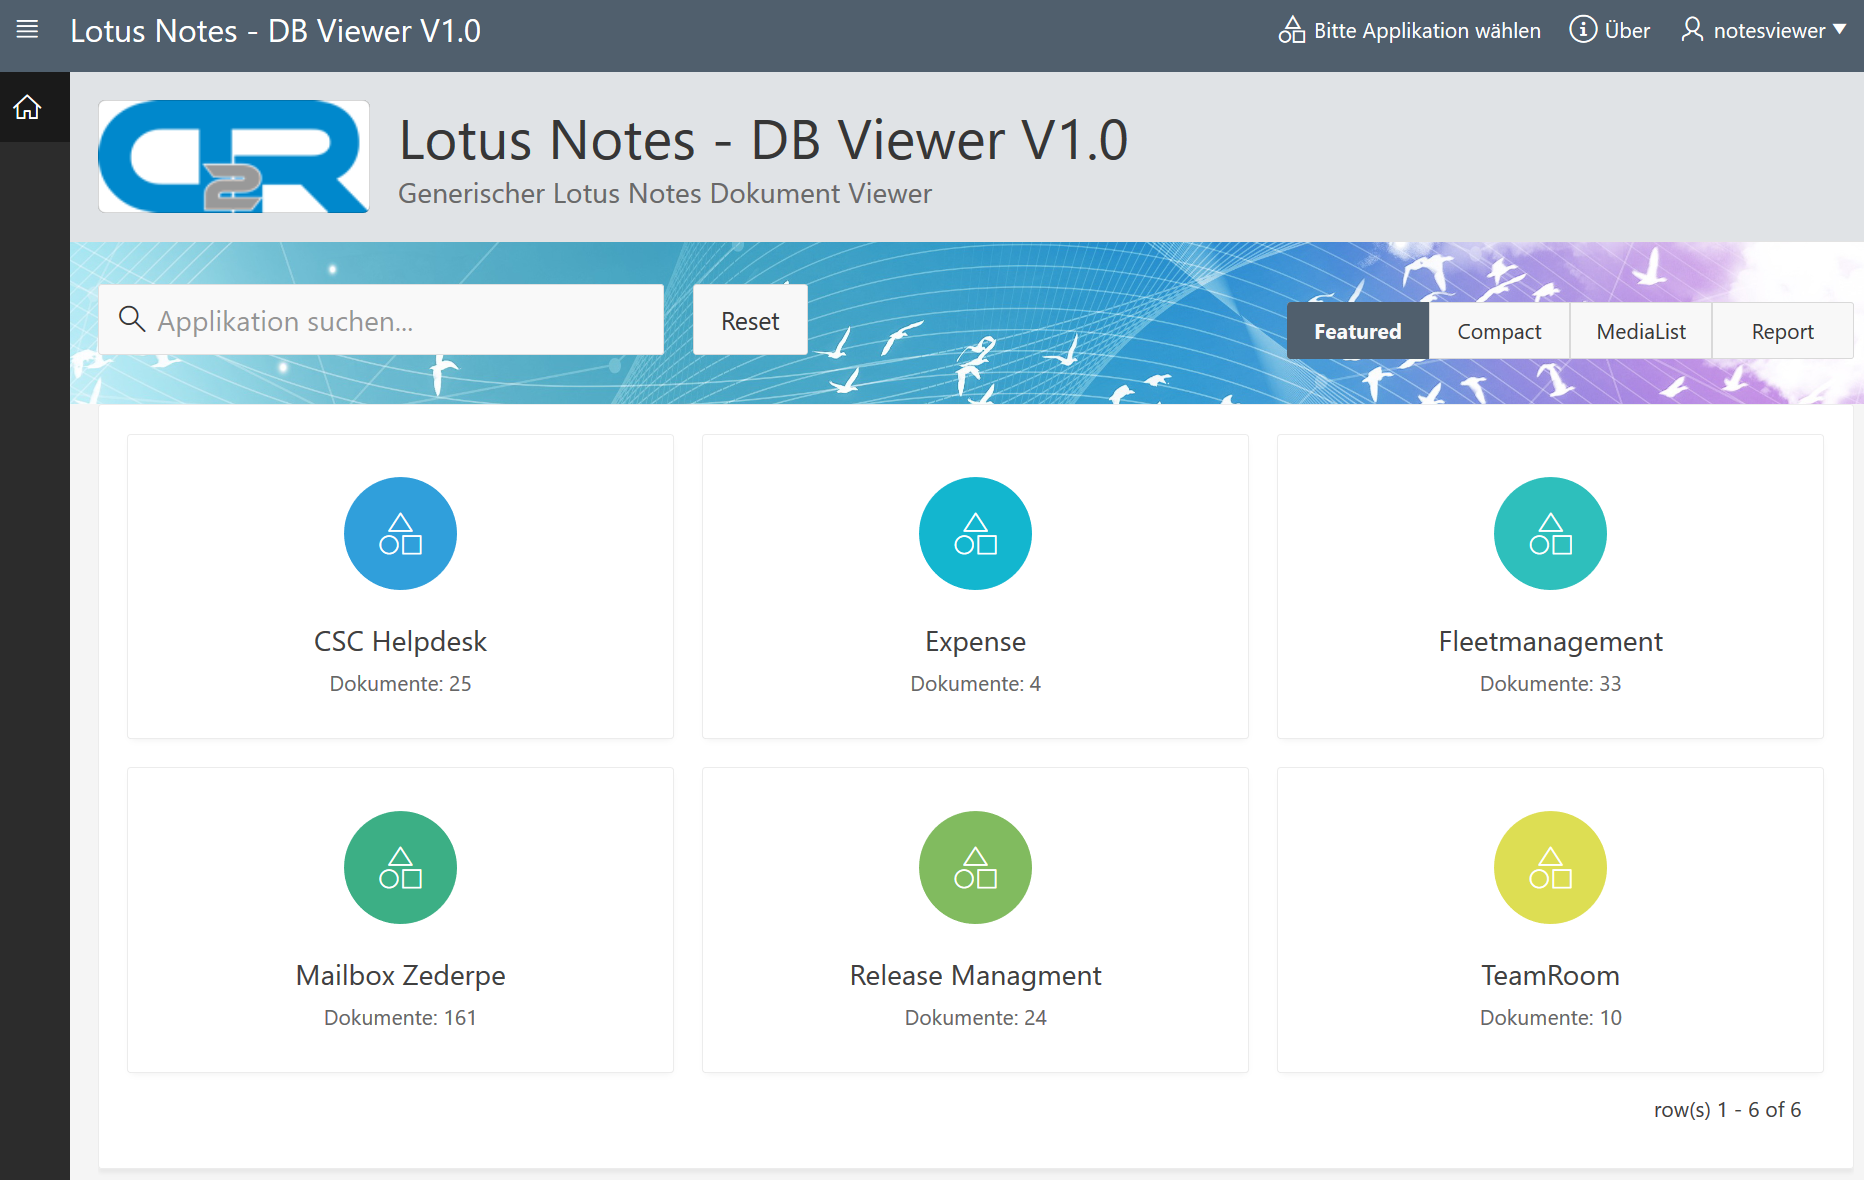 Lotus Notes - DB Viewer